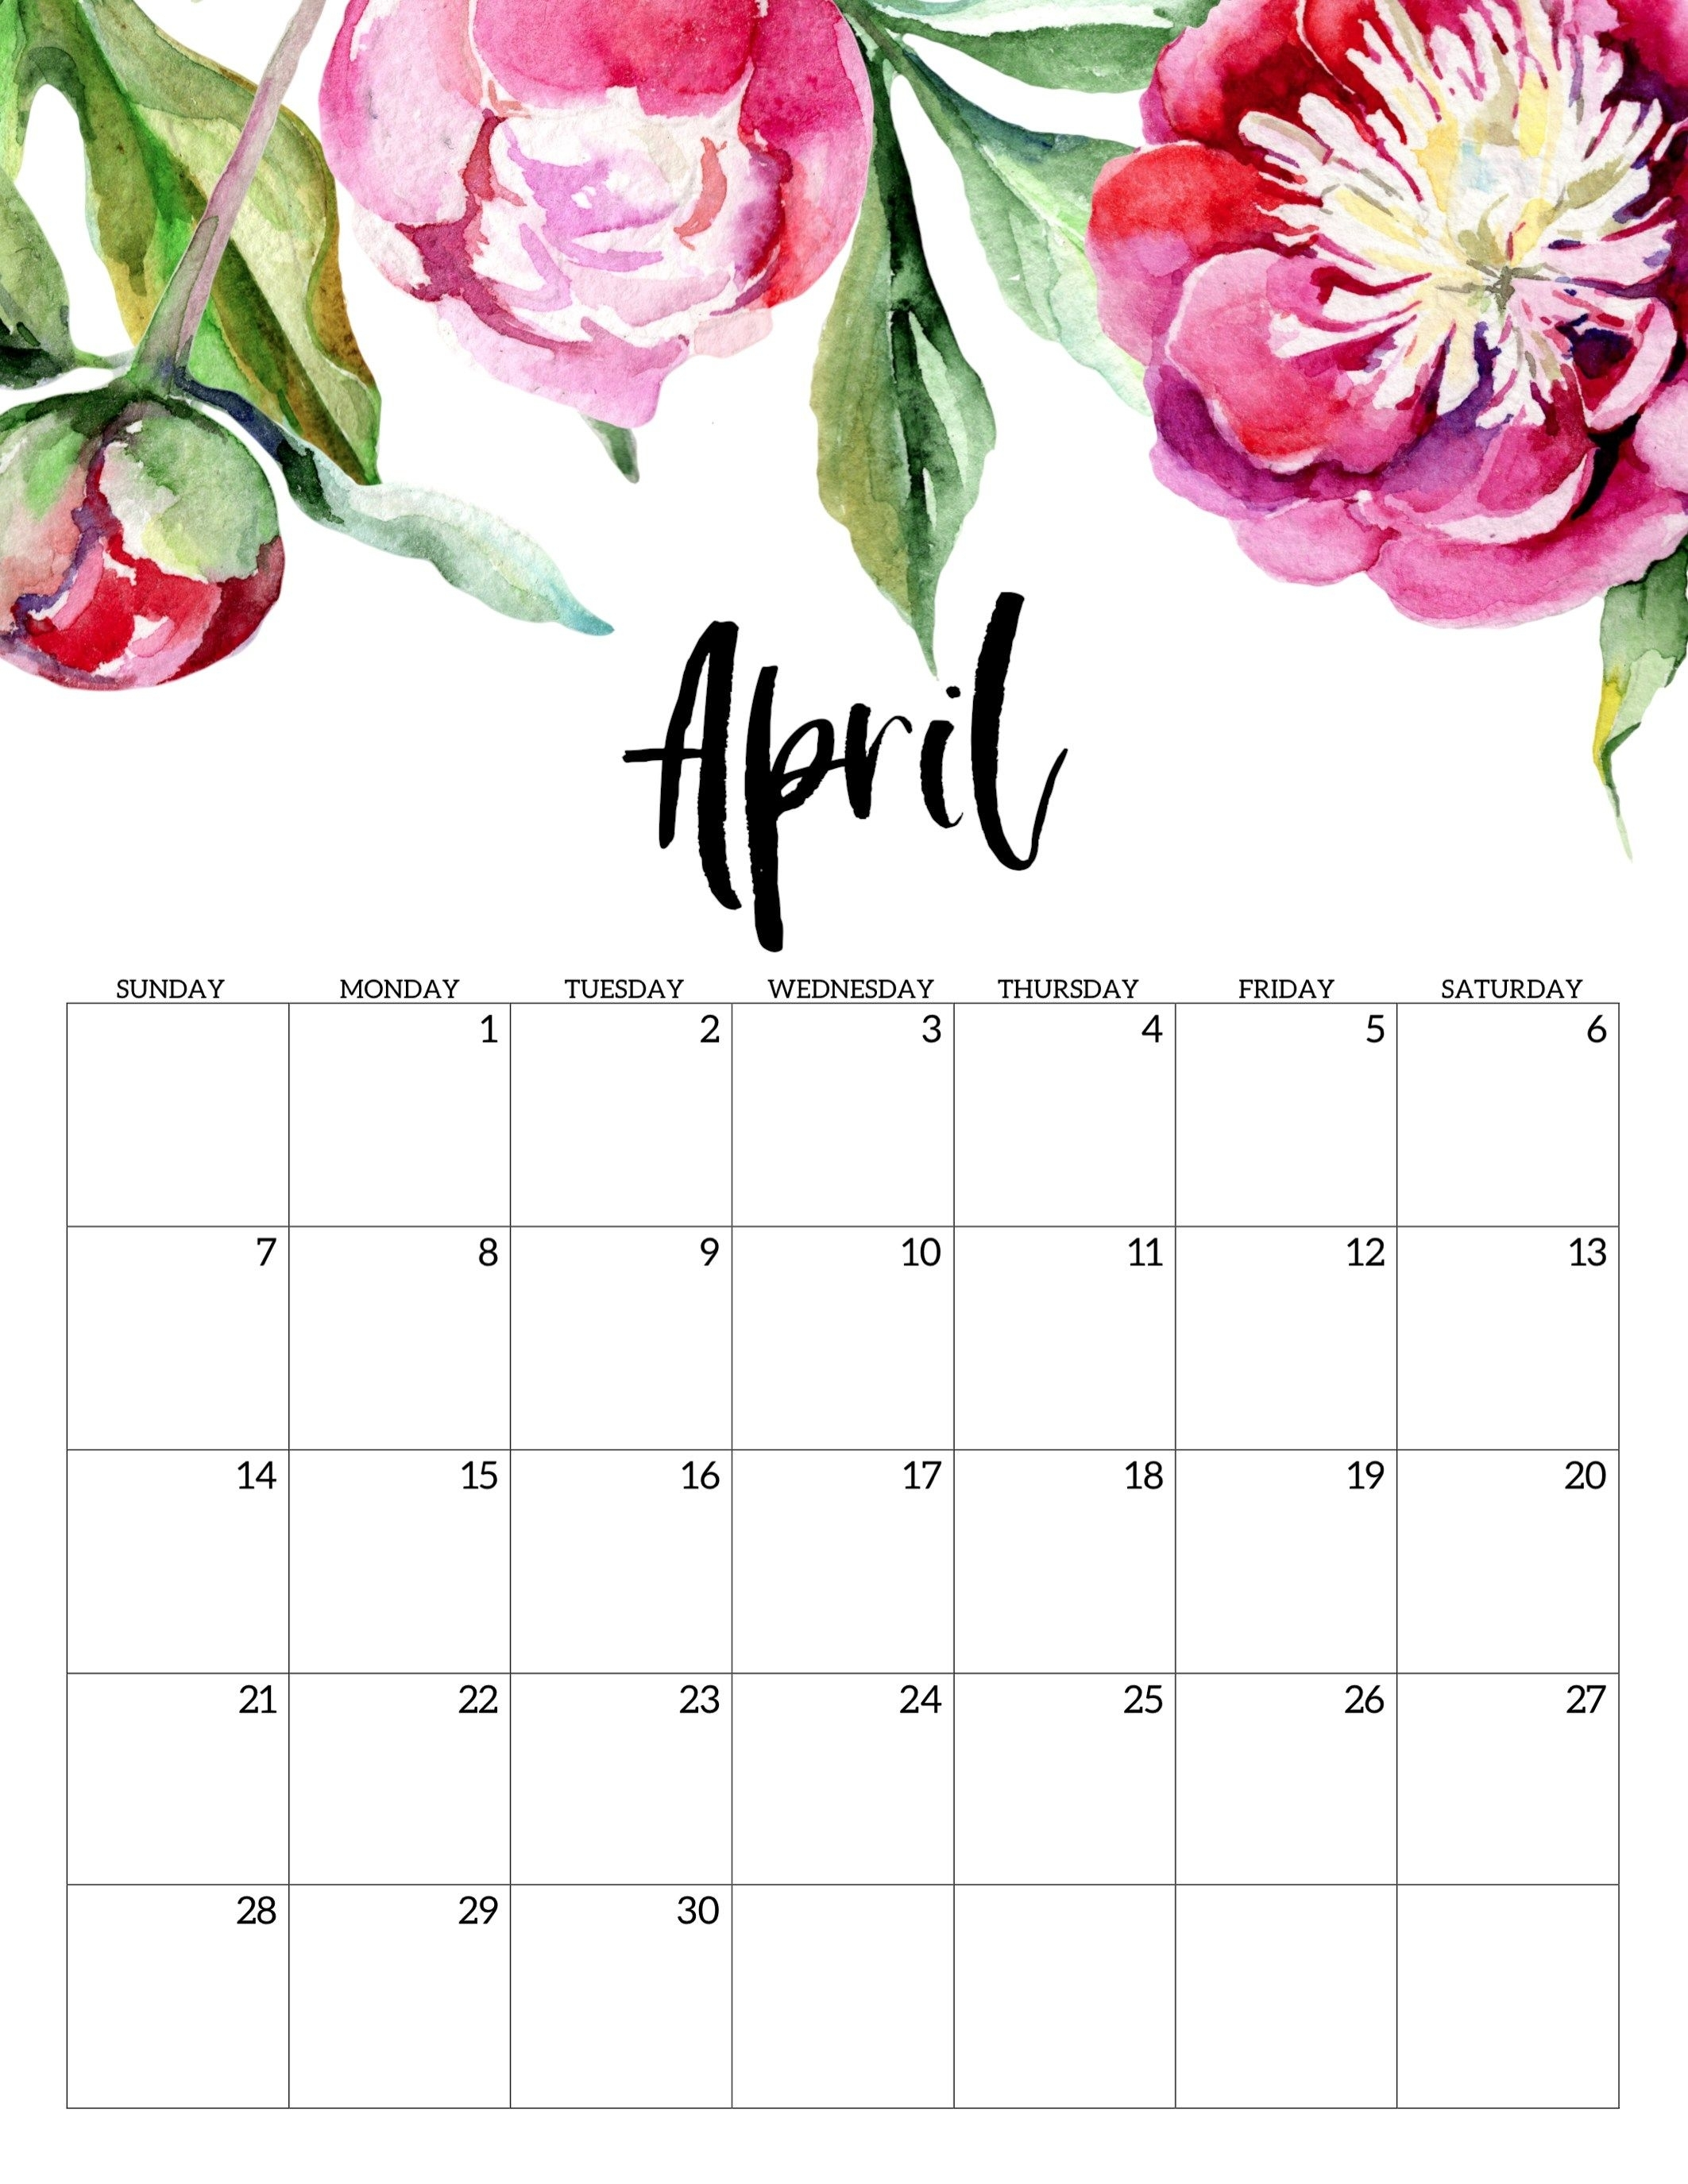 Pinindira Mando On Planner | Free Printable Calendar, Calendar pertaining to Monthly Calendar Watercolor Floral Printable